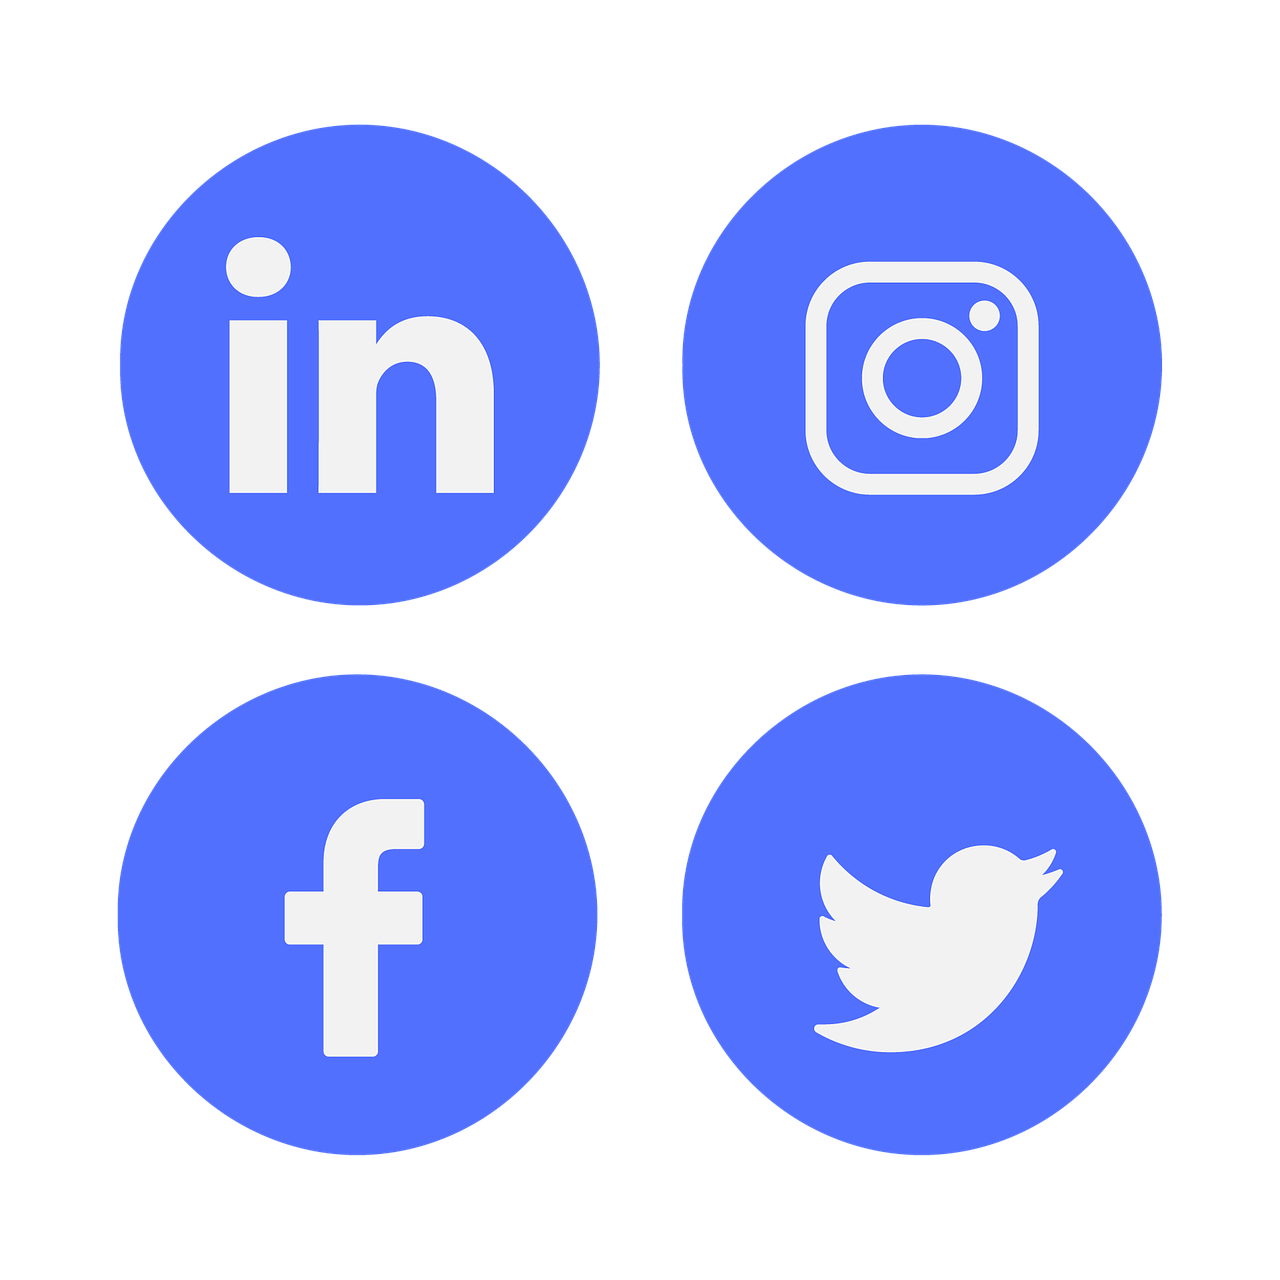 Social Media Icons for Linked In, Instagram, Facebook, and Twitter.